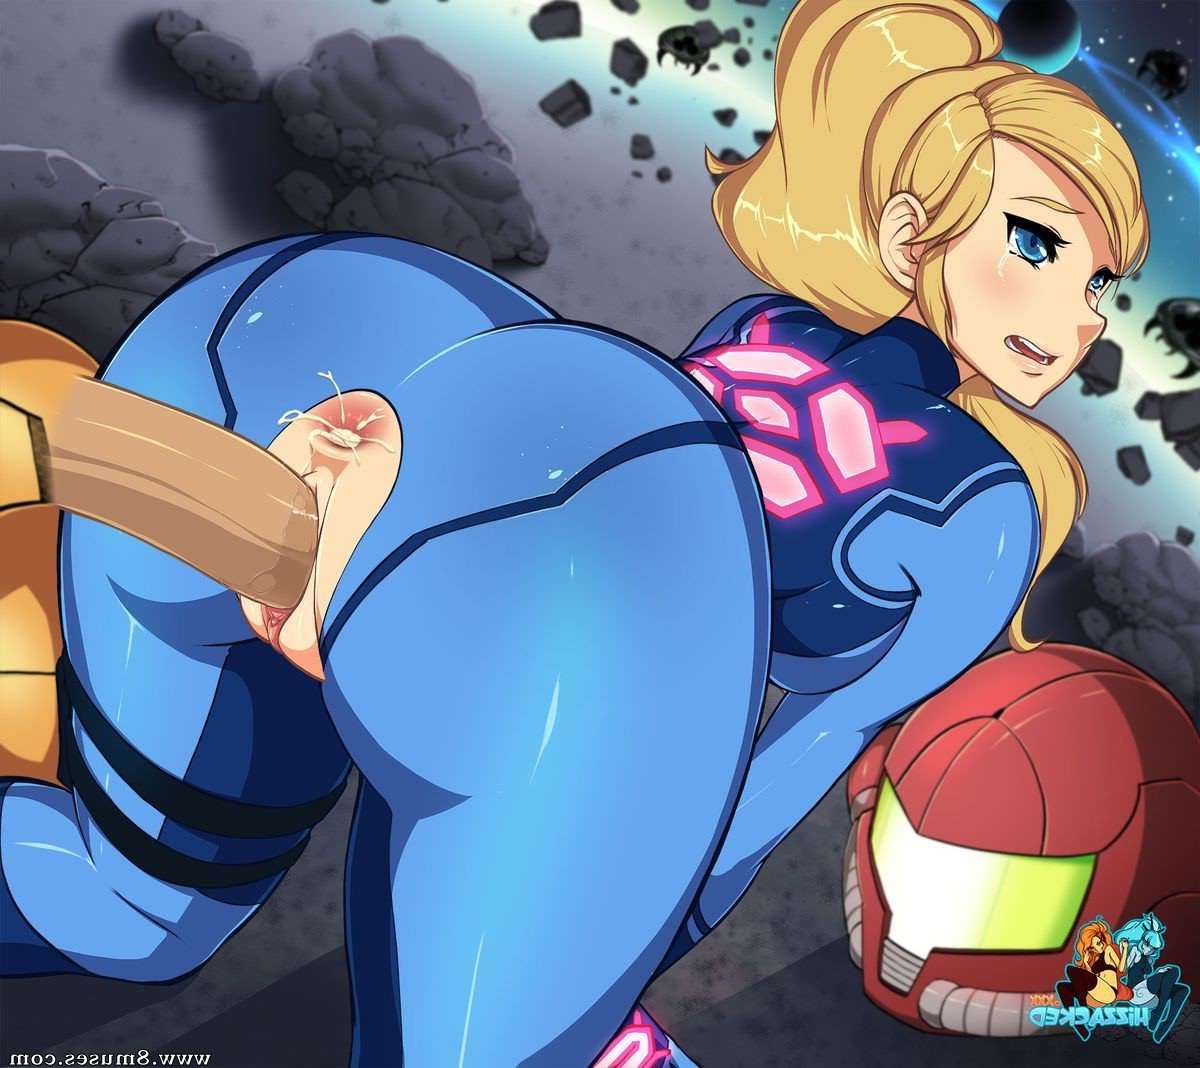 Hizzacked-Comics/Zero-Suit-Samus Zero_Suit_Samus__8muses_-_Sex_and_Porn_Comics_17.jpg